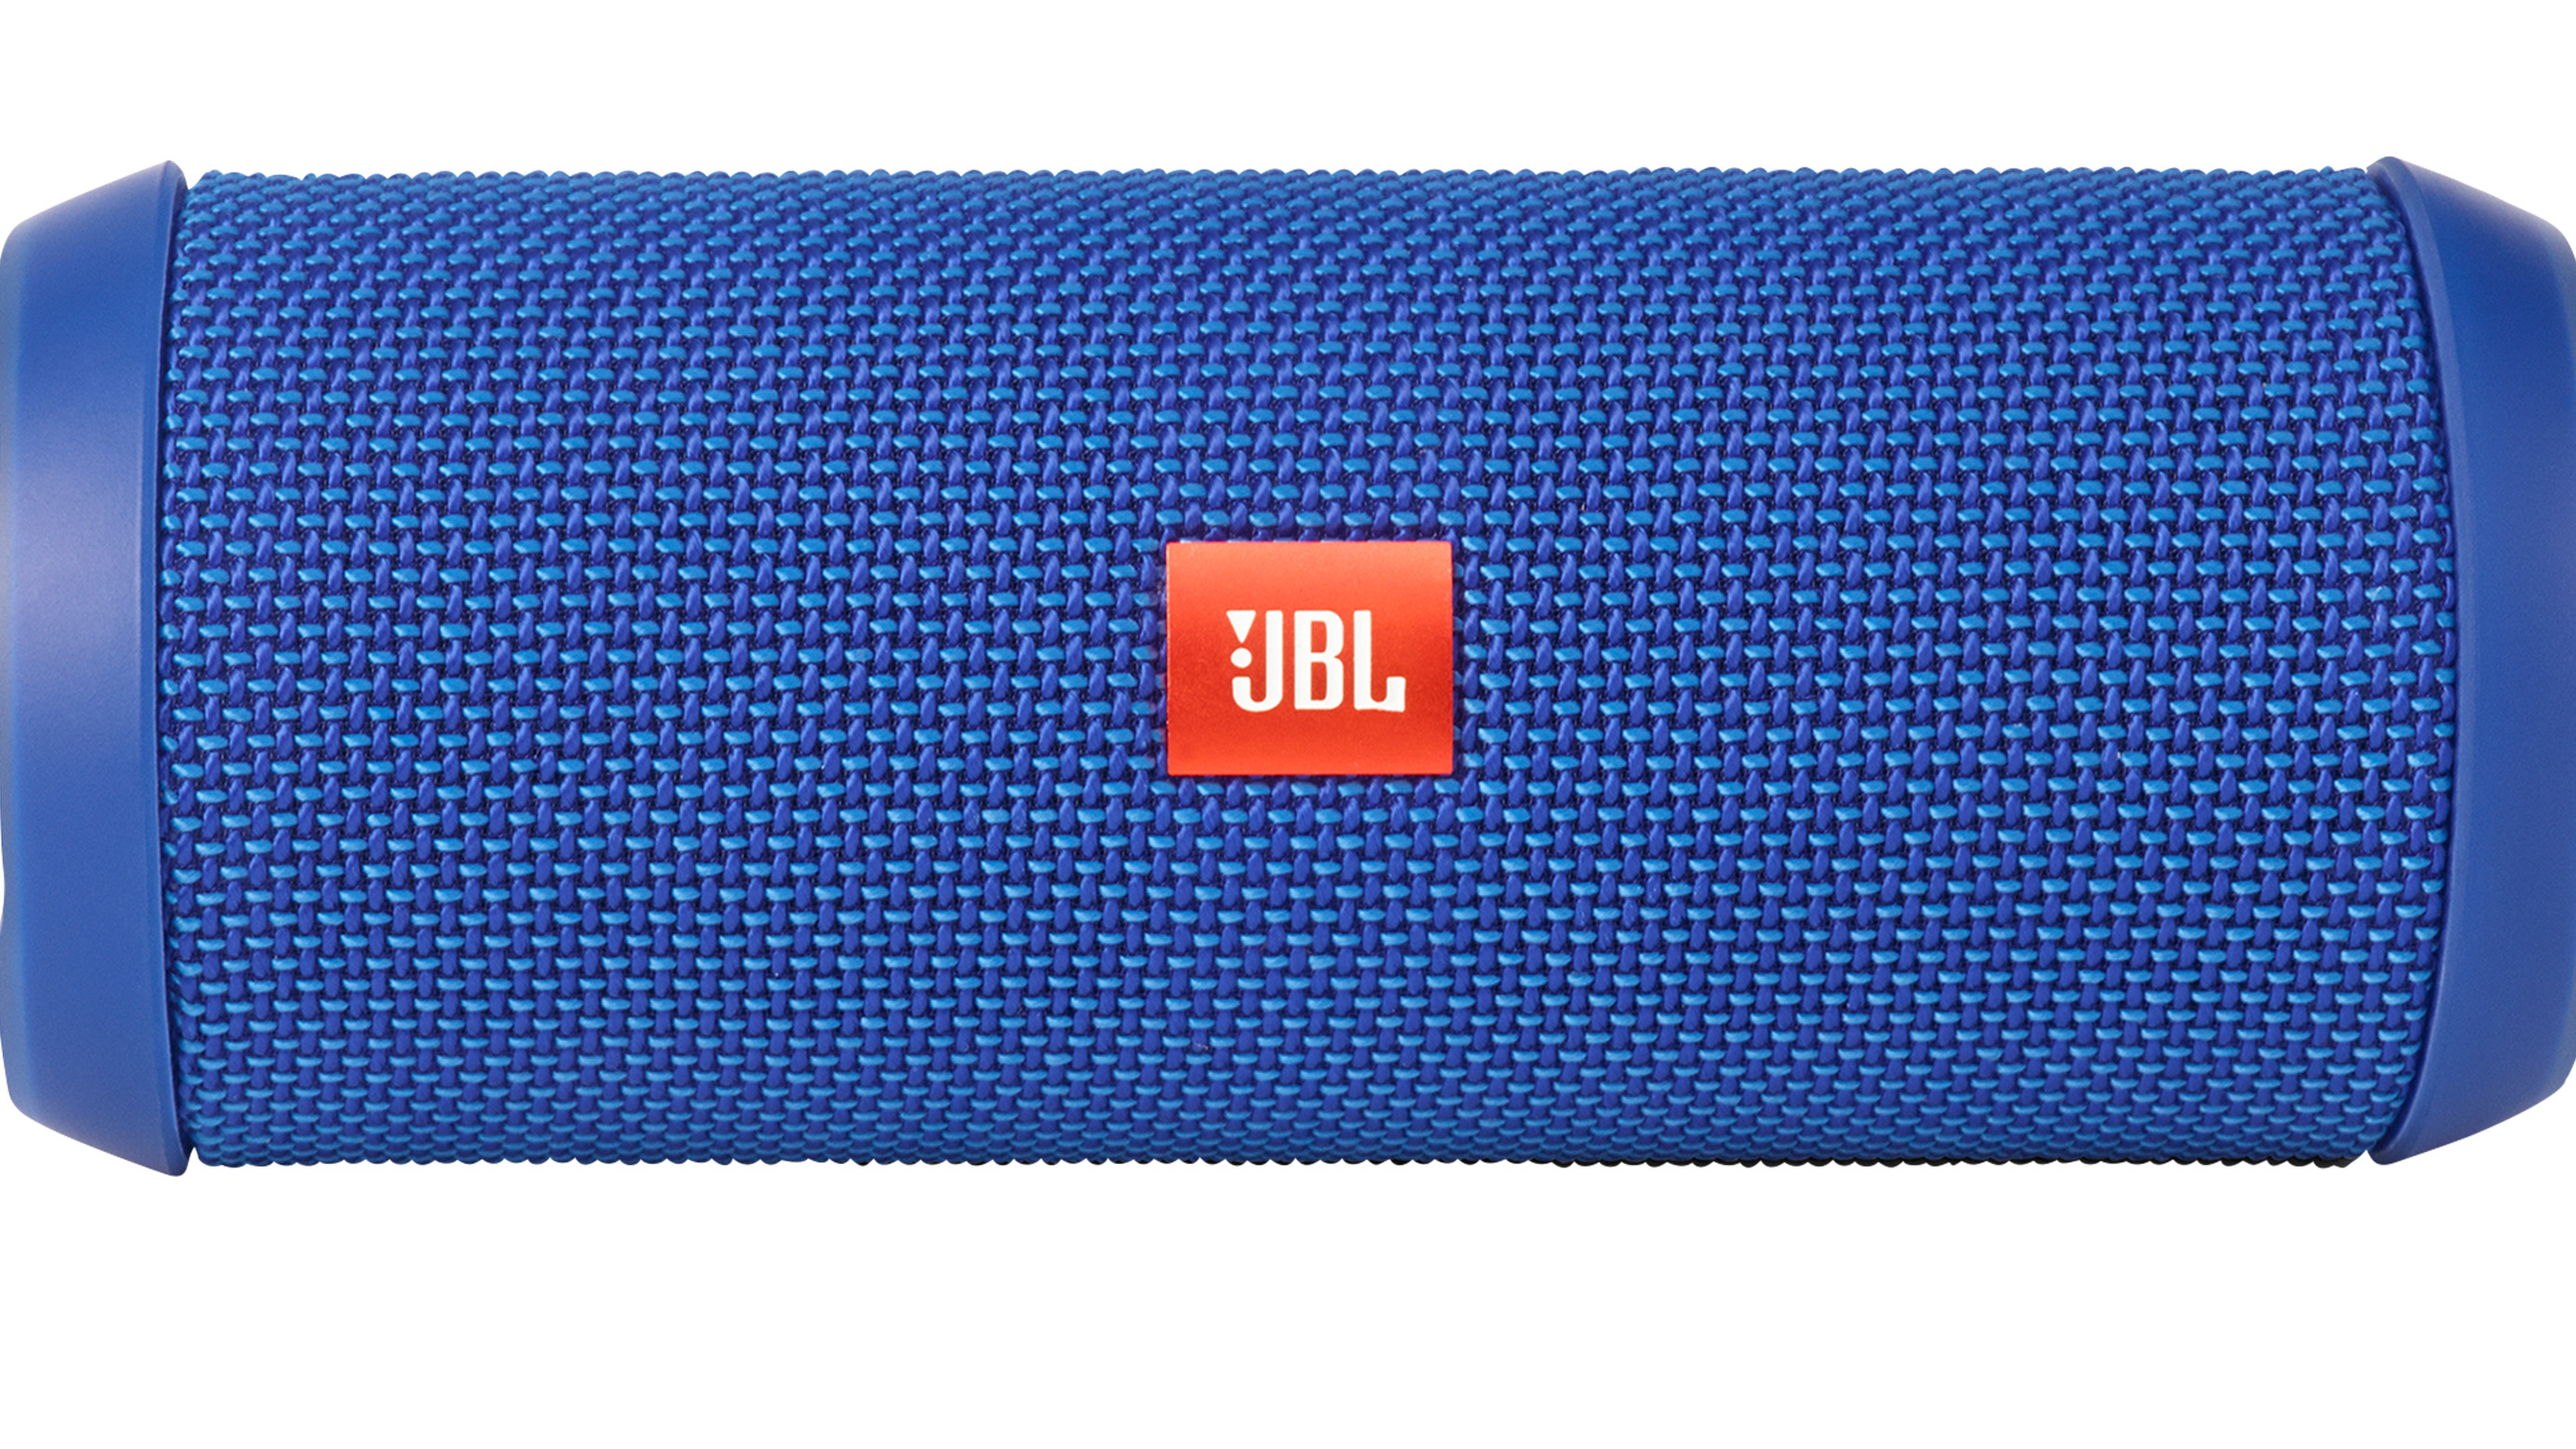 JBL Flip 3 Portable Bluetooth Speaker (Blue)